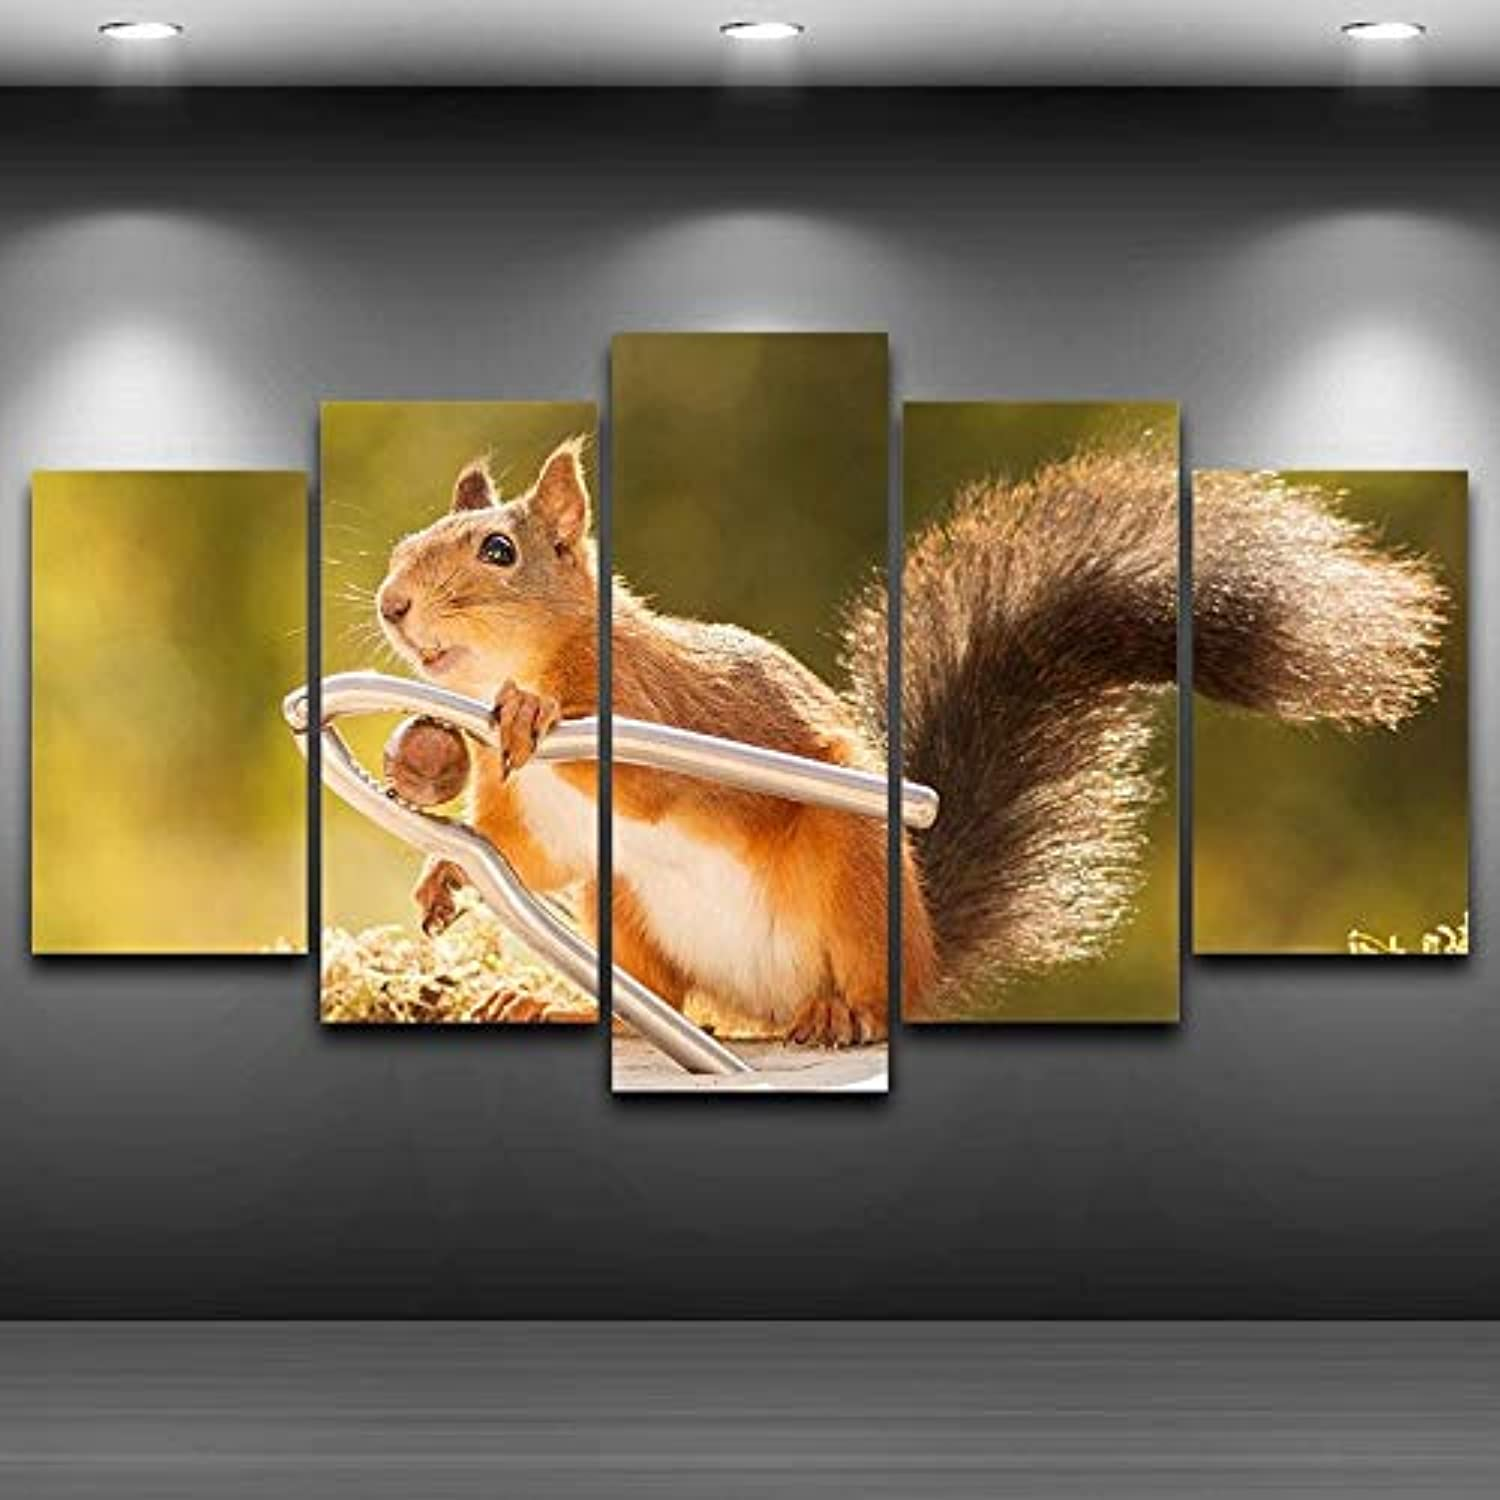 Painting Interior for Room Wall Frame HD Printed on Canvas 5 Panel Poster Beautiful Animal Squirrel Modular Picture